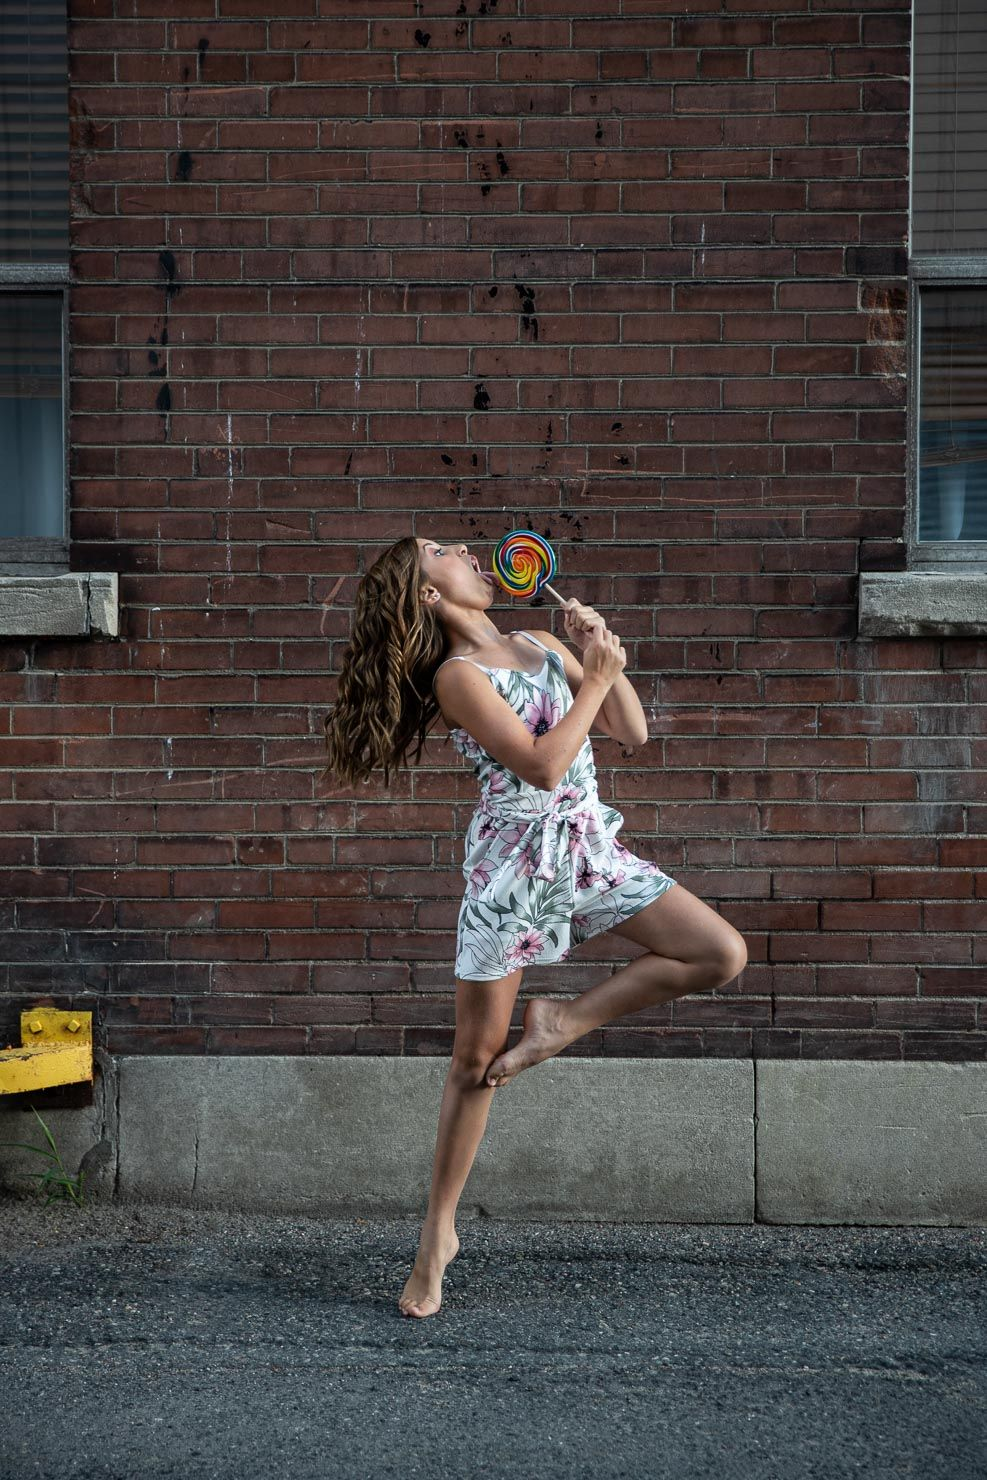 Candy Dancer, Dancer, Dance Pose, Dance by aKaiserPhoto, Dance Photographer, #dancersanddesserts